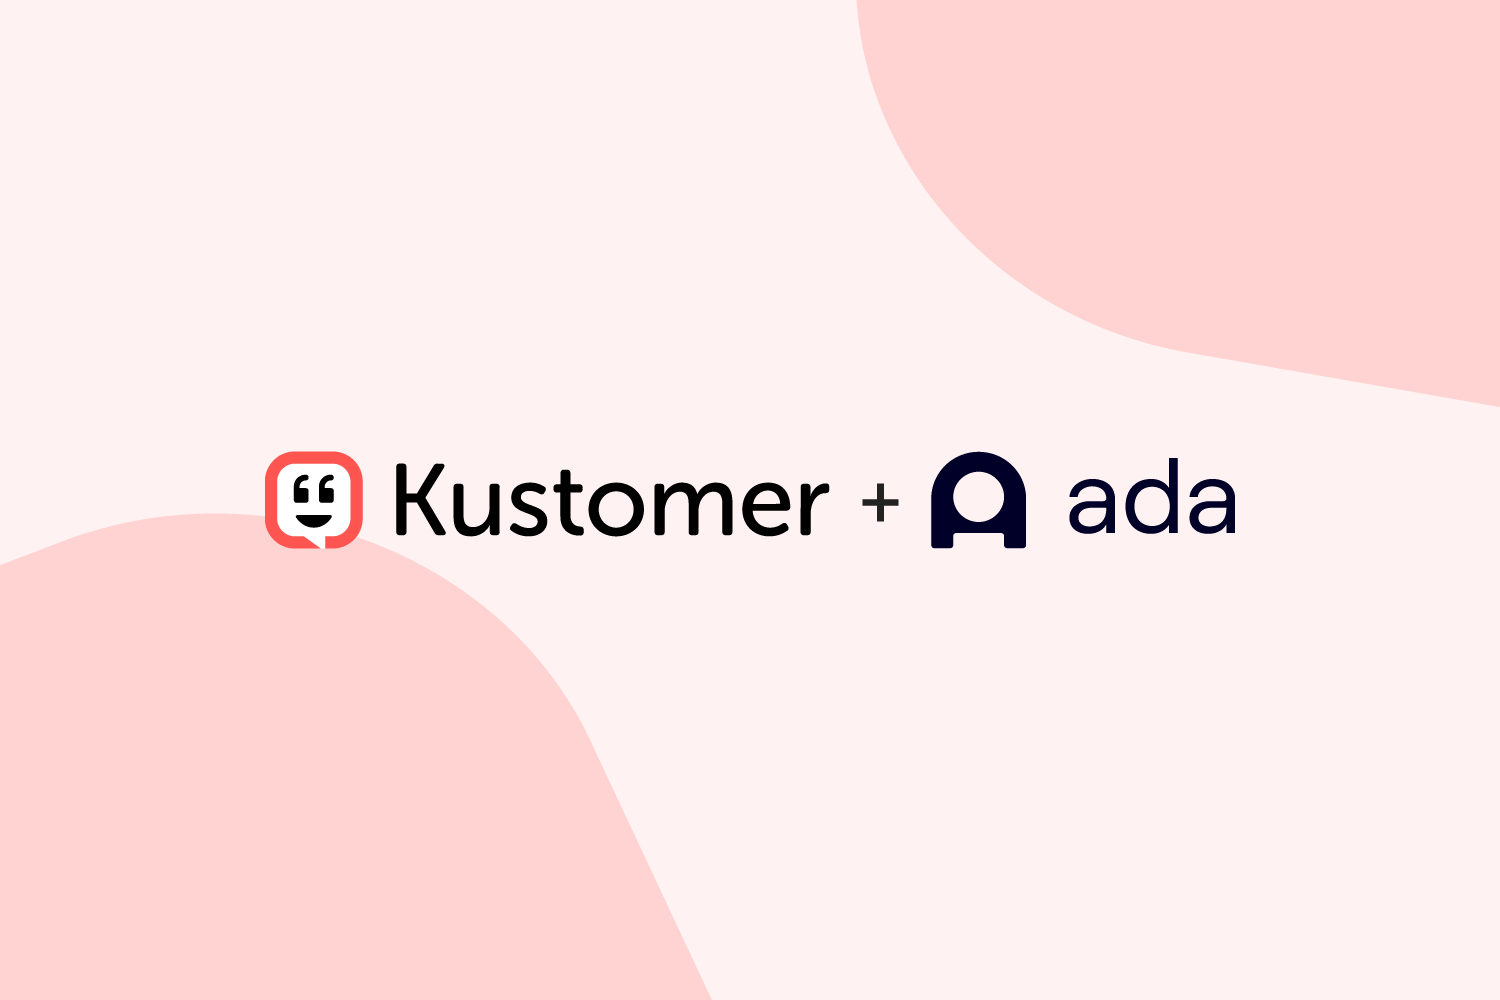 Supercharge Your Customer Service with Kustomer and Ada